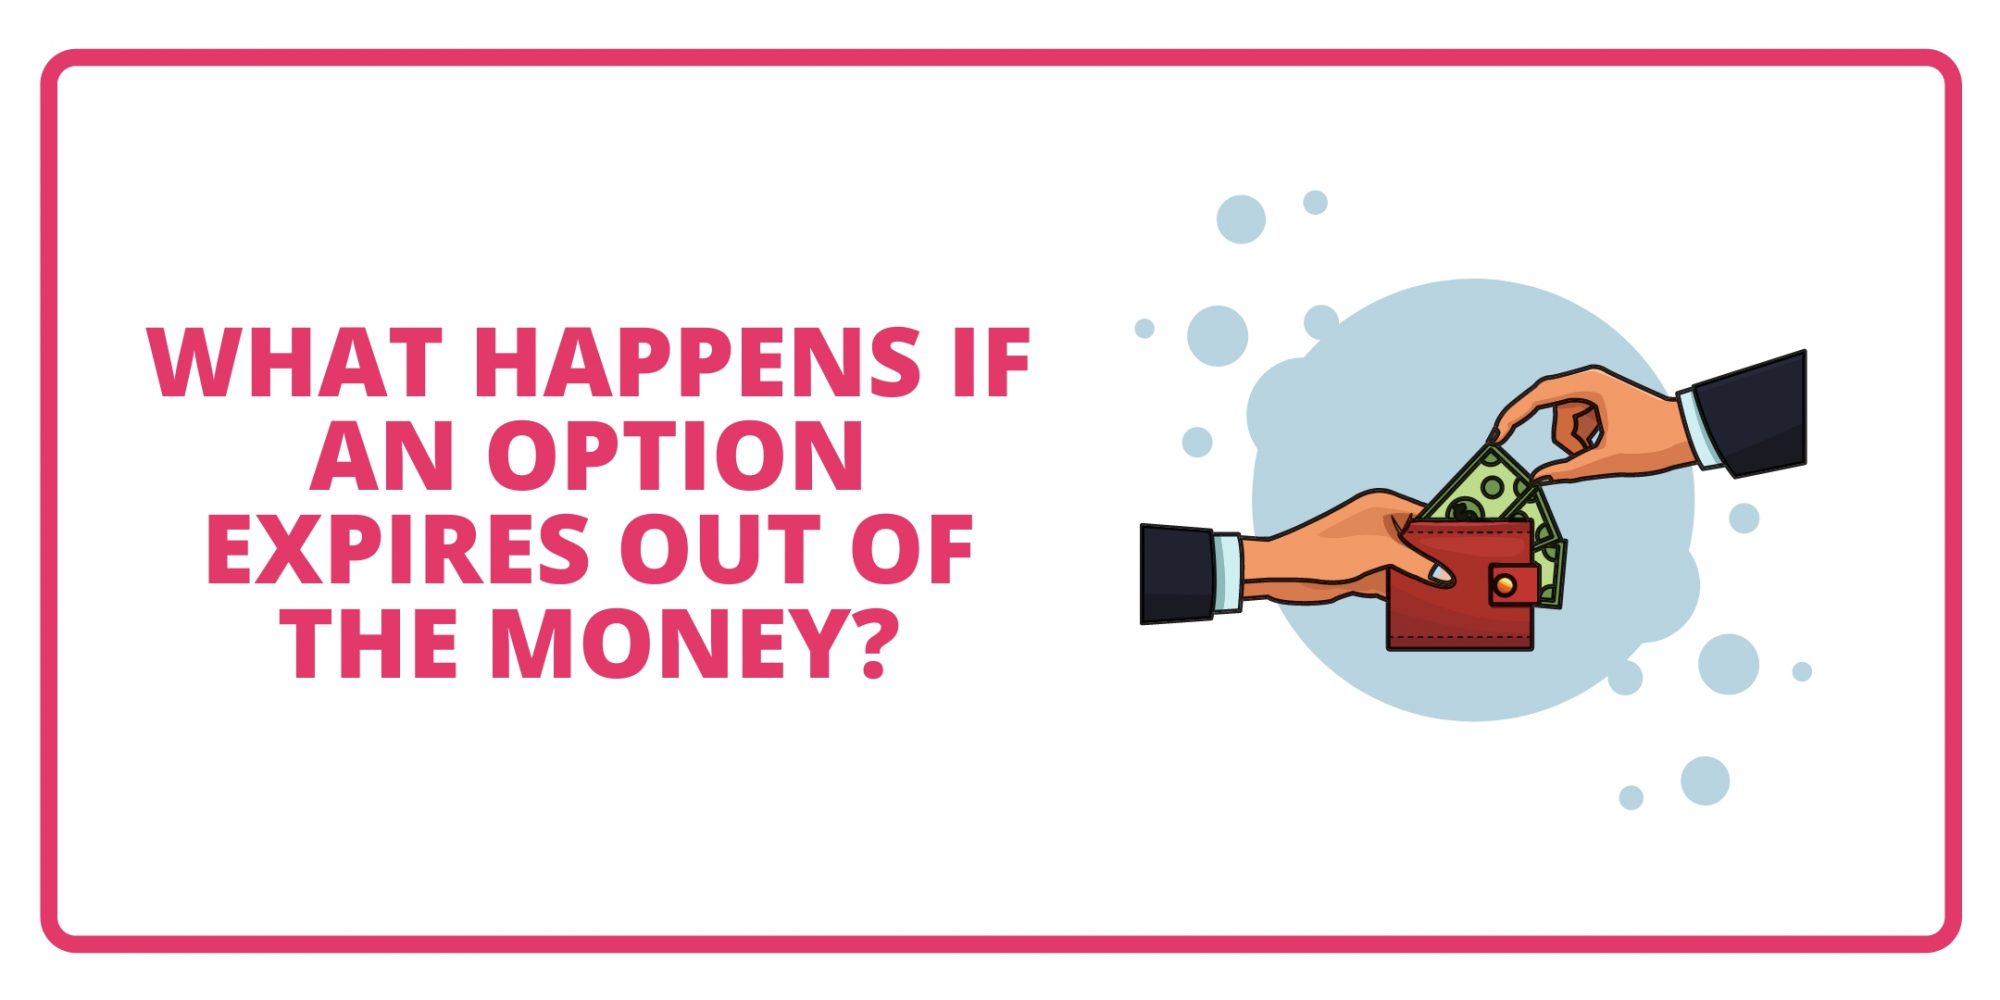 What if an Option Expires Out of Money?